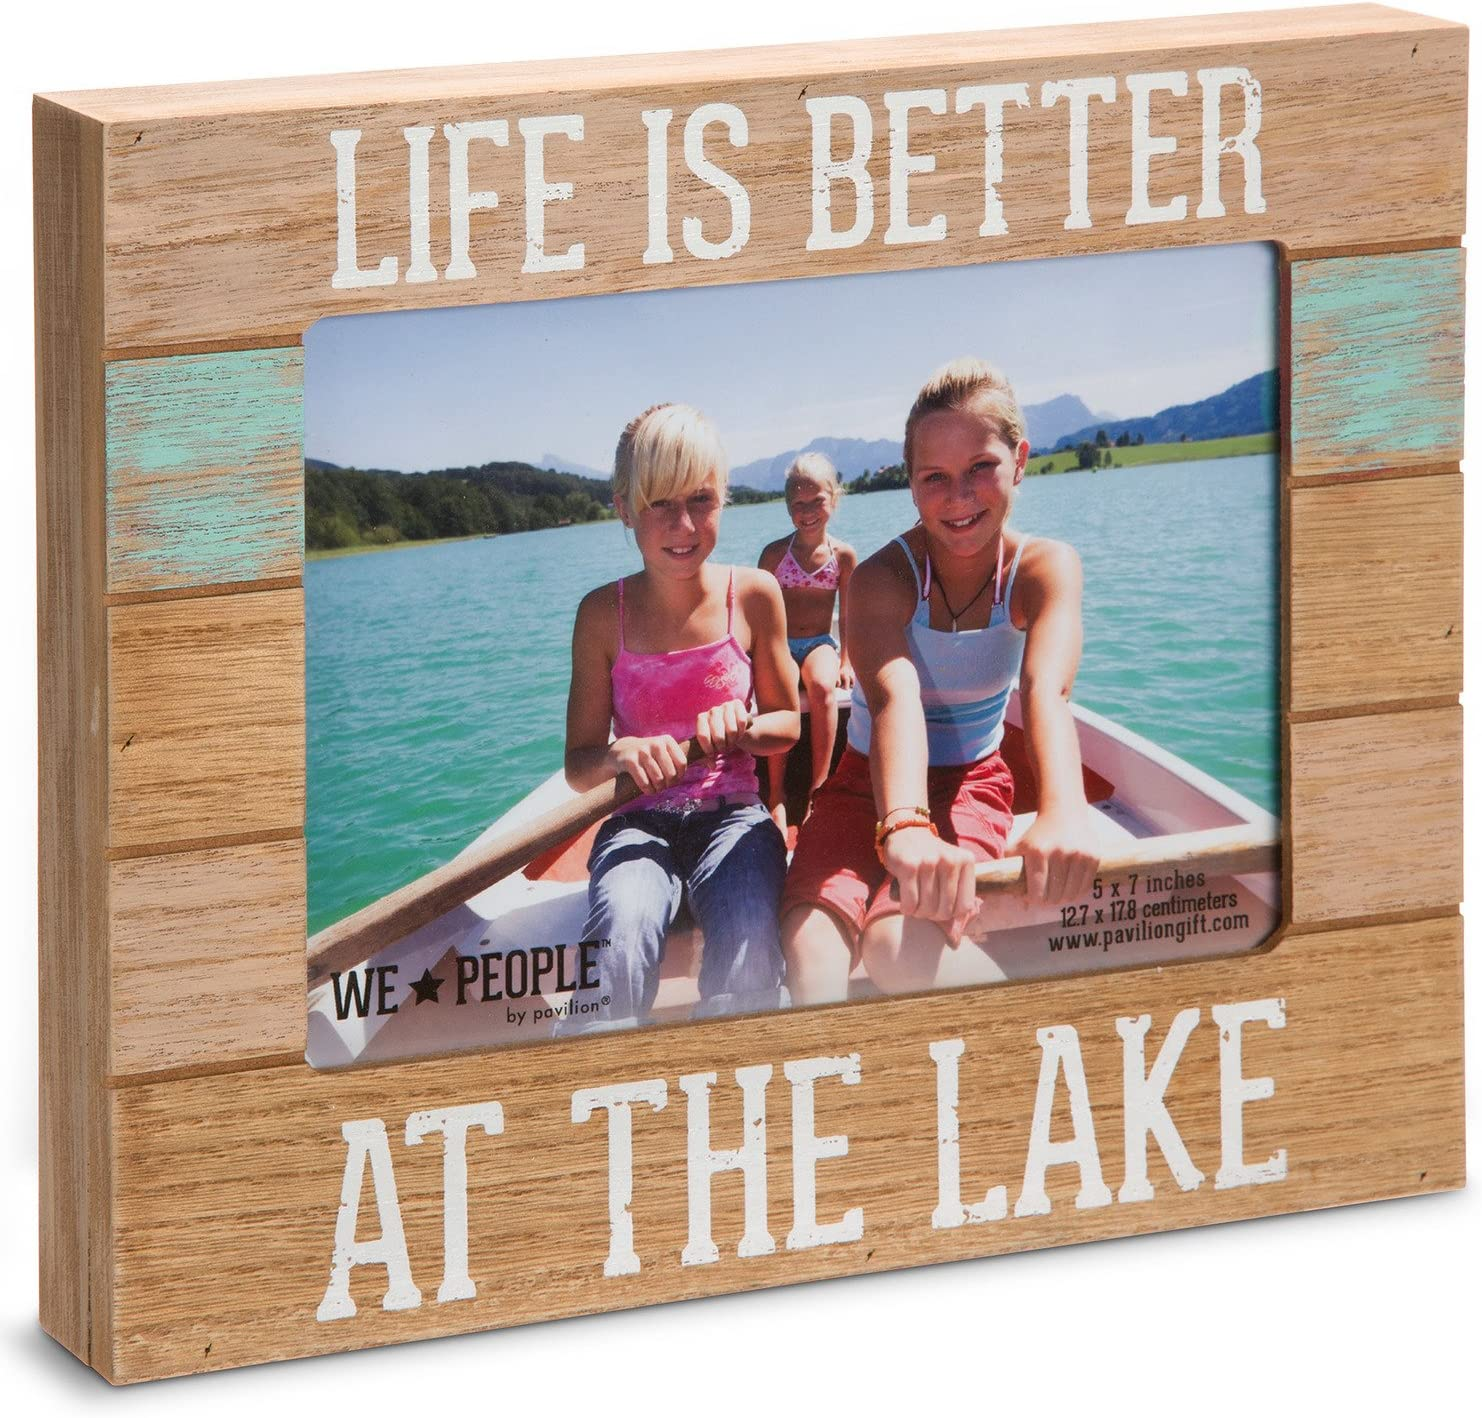 "Pavilion Gift Company 67243 We People-Life is Better at The Lake Picture Frame, 5""x7"""